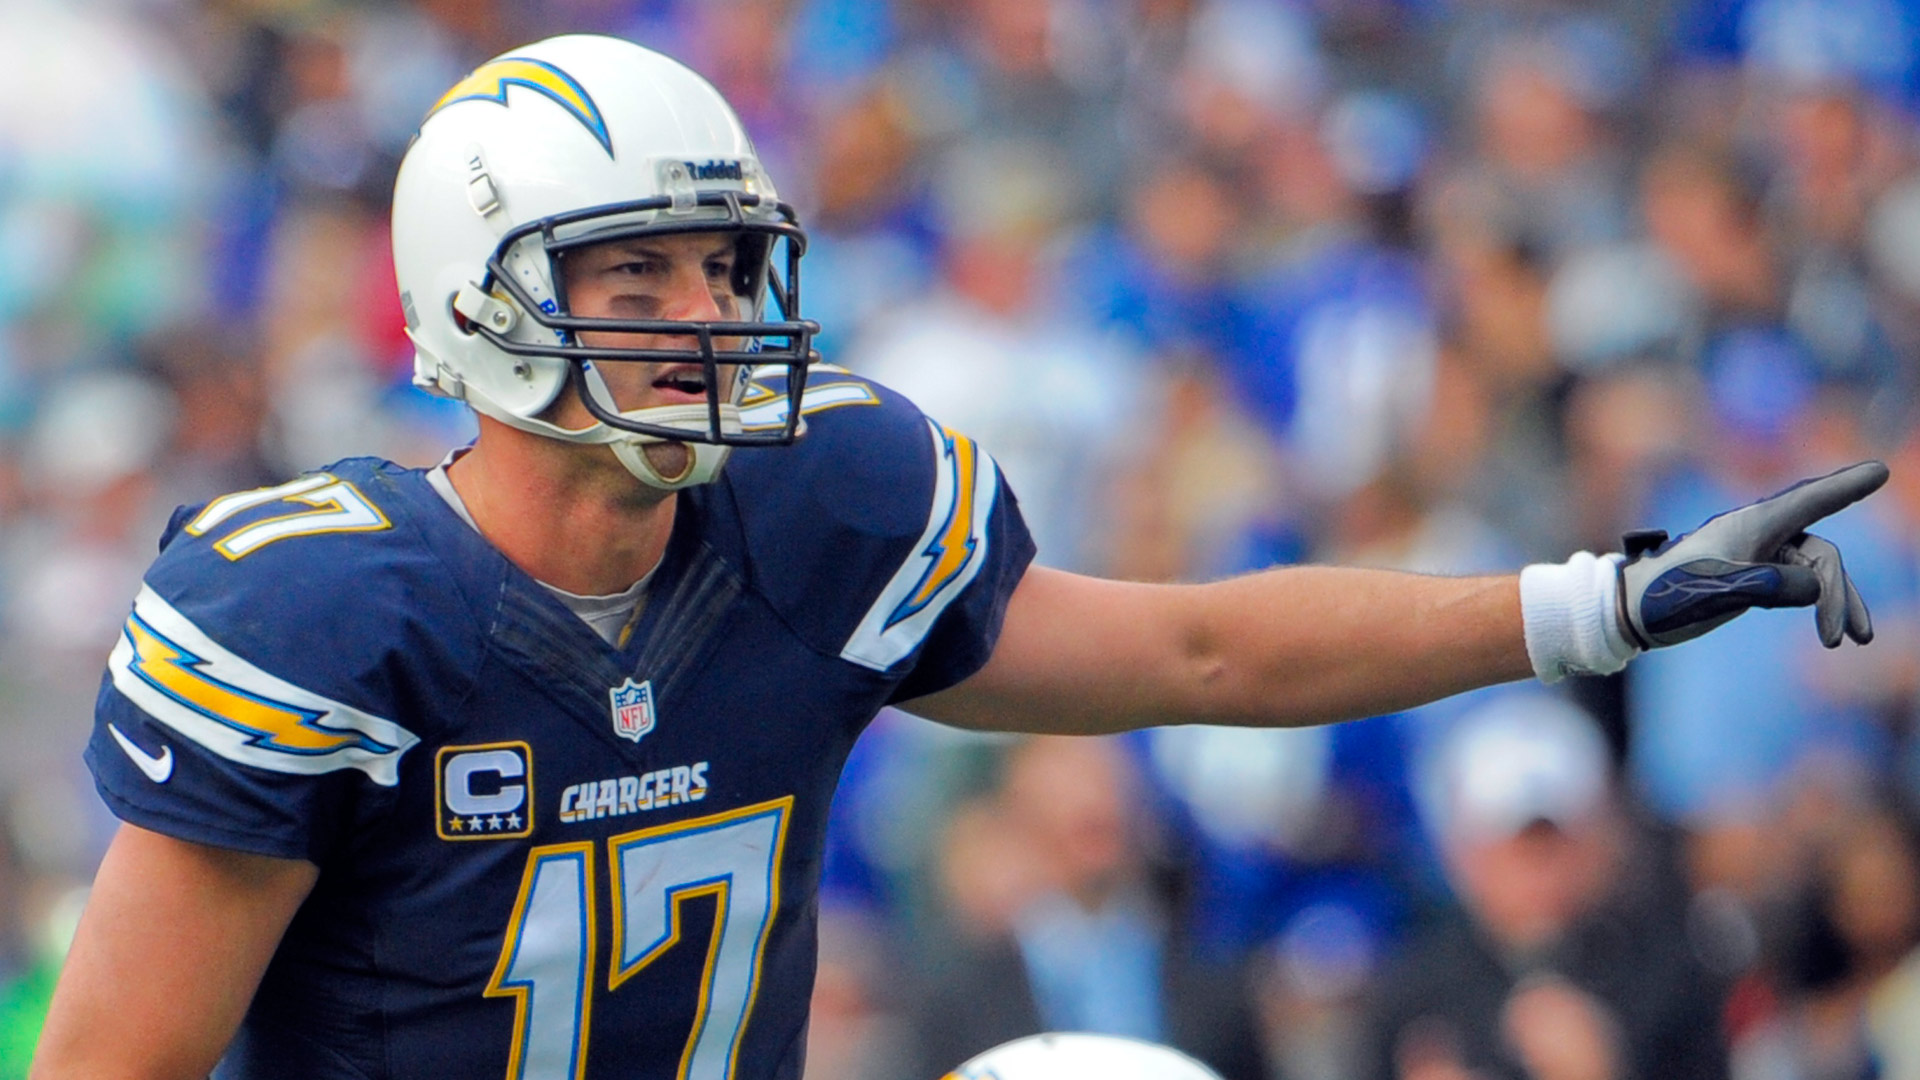 Philip Rivers 2018 player profile game log season stats career stats recent news If you play fantasy sports get breaking news and immerse yourself in the